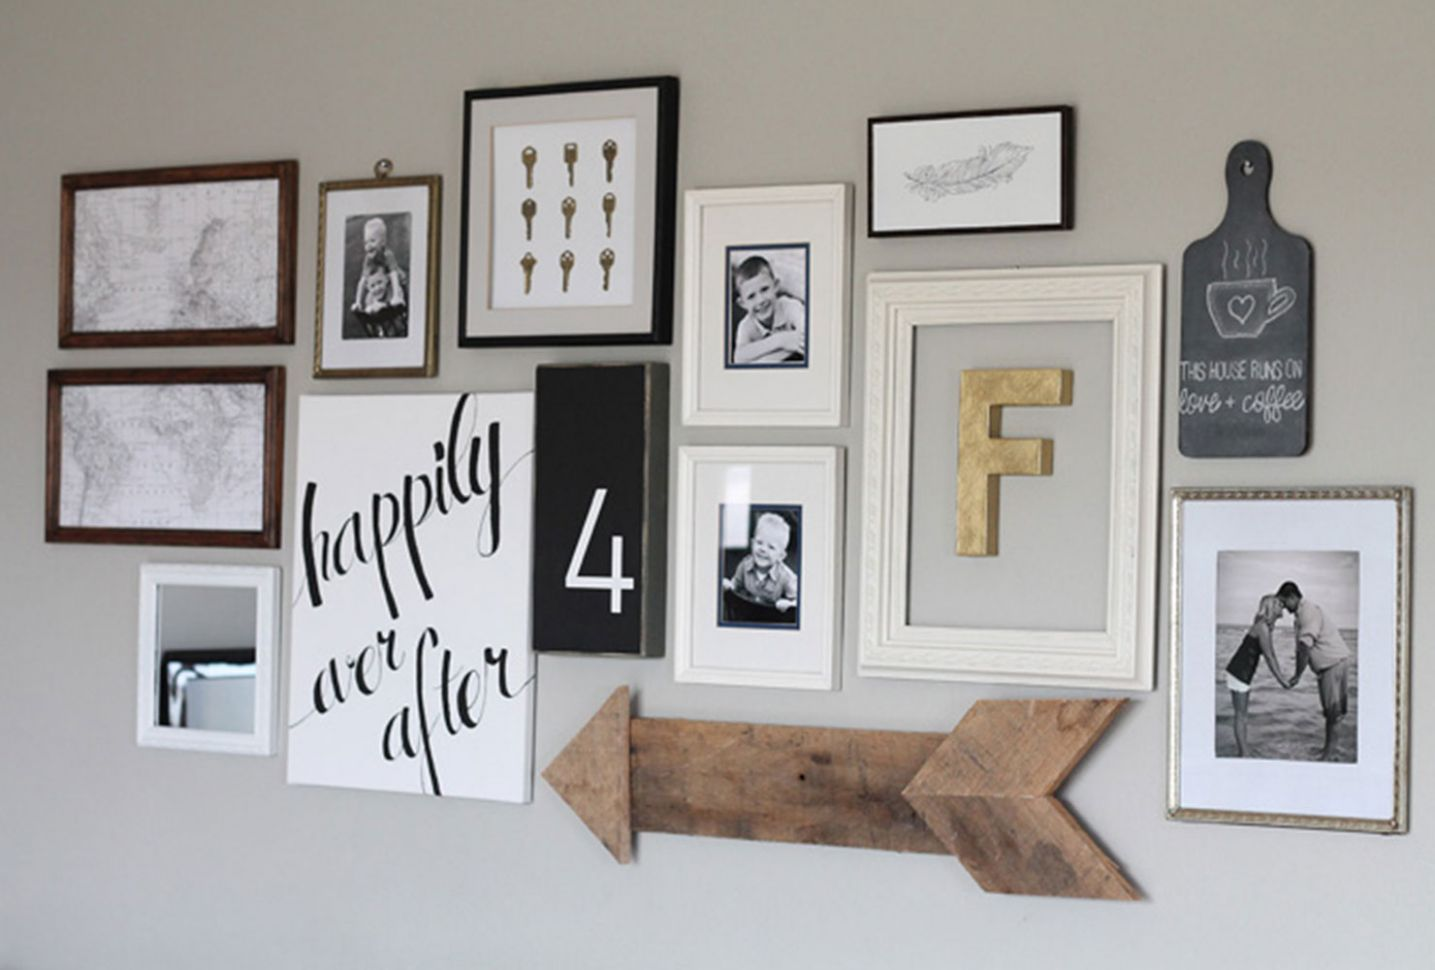 11+ DIY Room Decor Ideas to Decorate Your Home   Shutterfly - diy home decor wall